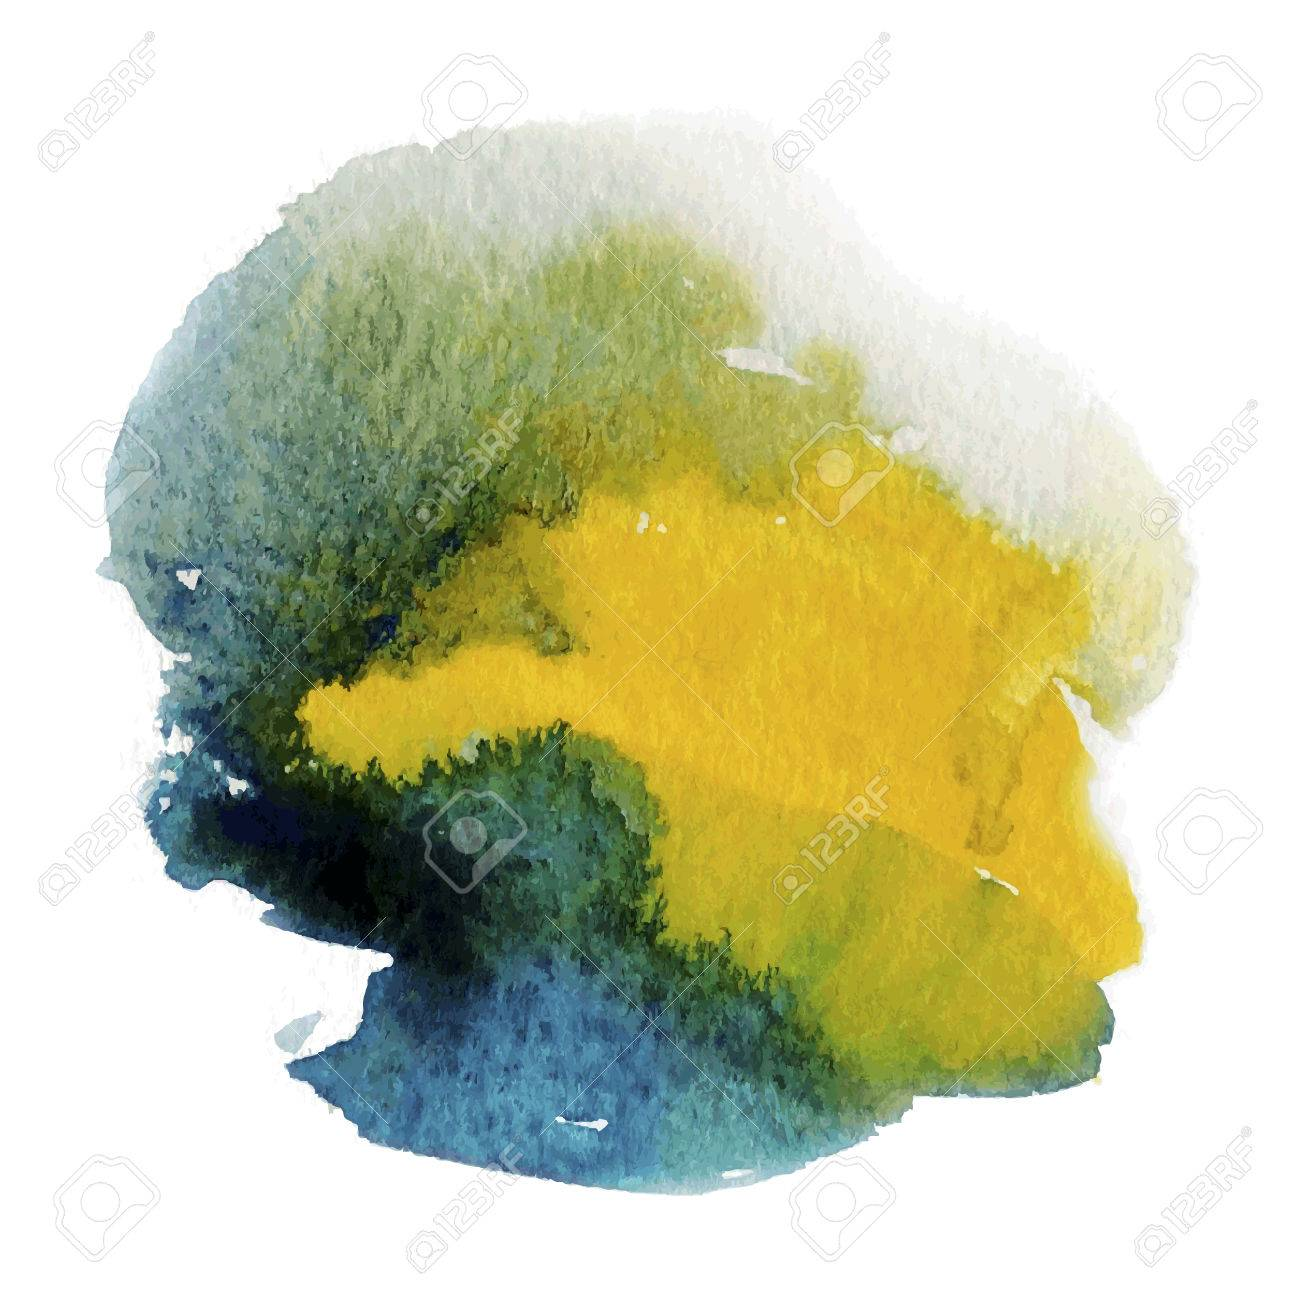 Watercolor abstract background - 38162078